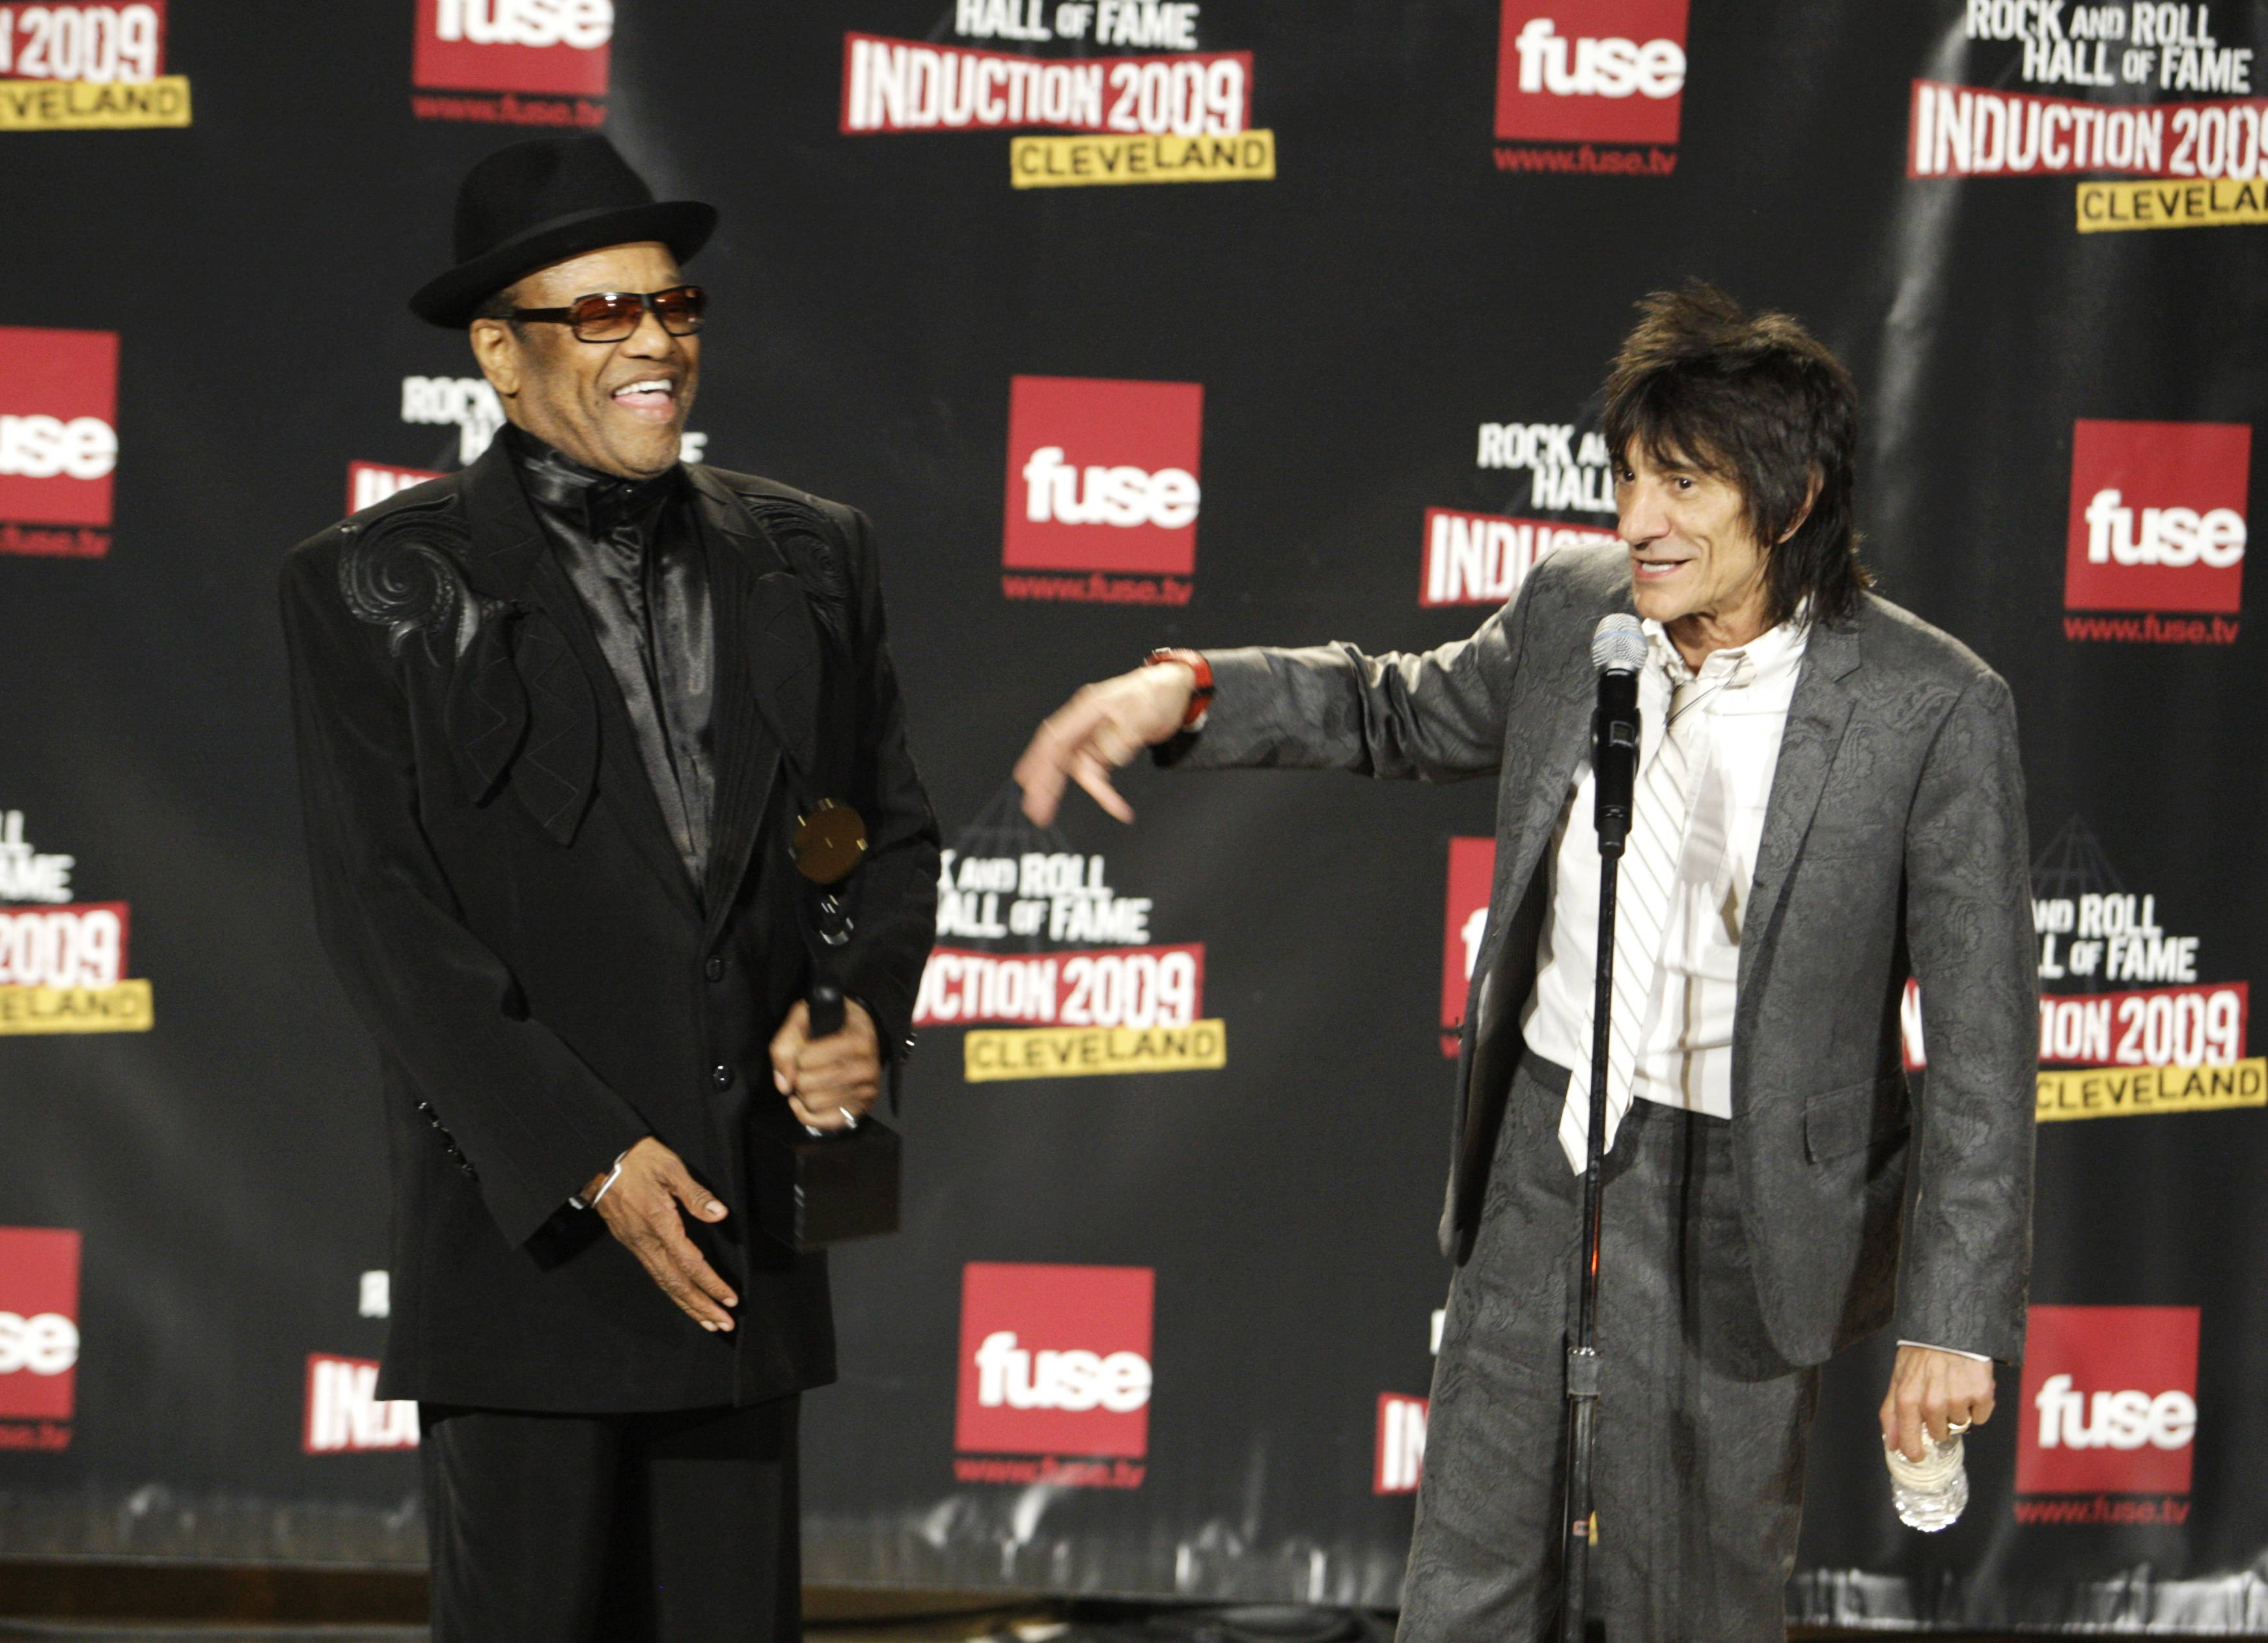 Bobby Womack, left, and Ronnie Wood of the Rolling Stones speak backstage after Womack was inducted into the Rock and Roll Hall of Fame at the 2009 induction ceremony in Cleveland. Womack, 70, a colorful and highly influential R&B singer-songwriter who impacted artists from the Rolling Stones to Damon Albarn, has died. Womack's publicist Sonya Kolowrat confirmed to The Associated Press on Friday, June 27, 2014, that the singer died but had no other details to provide.